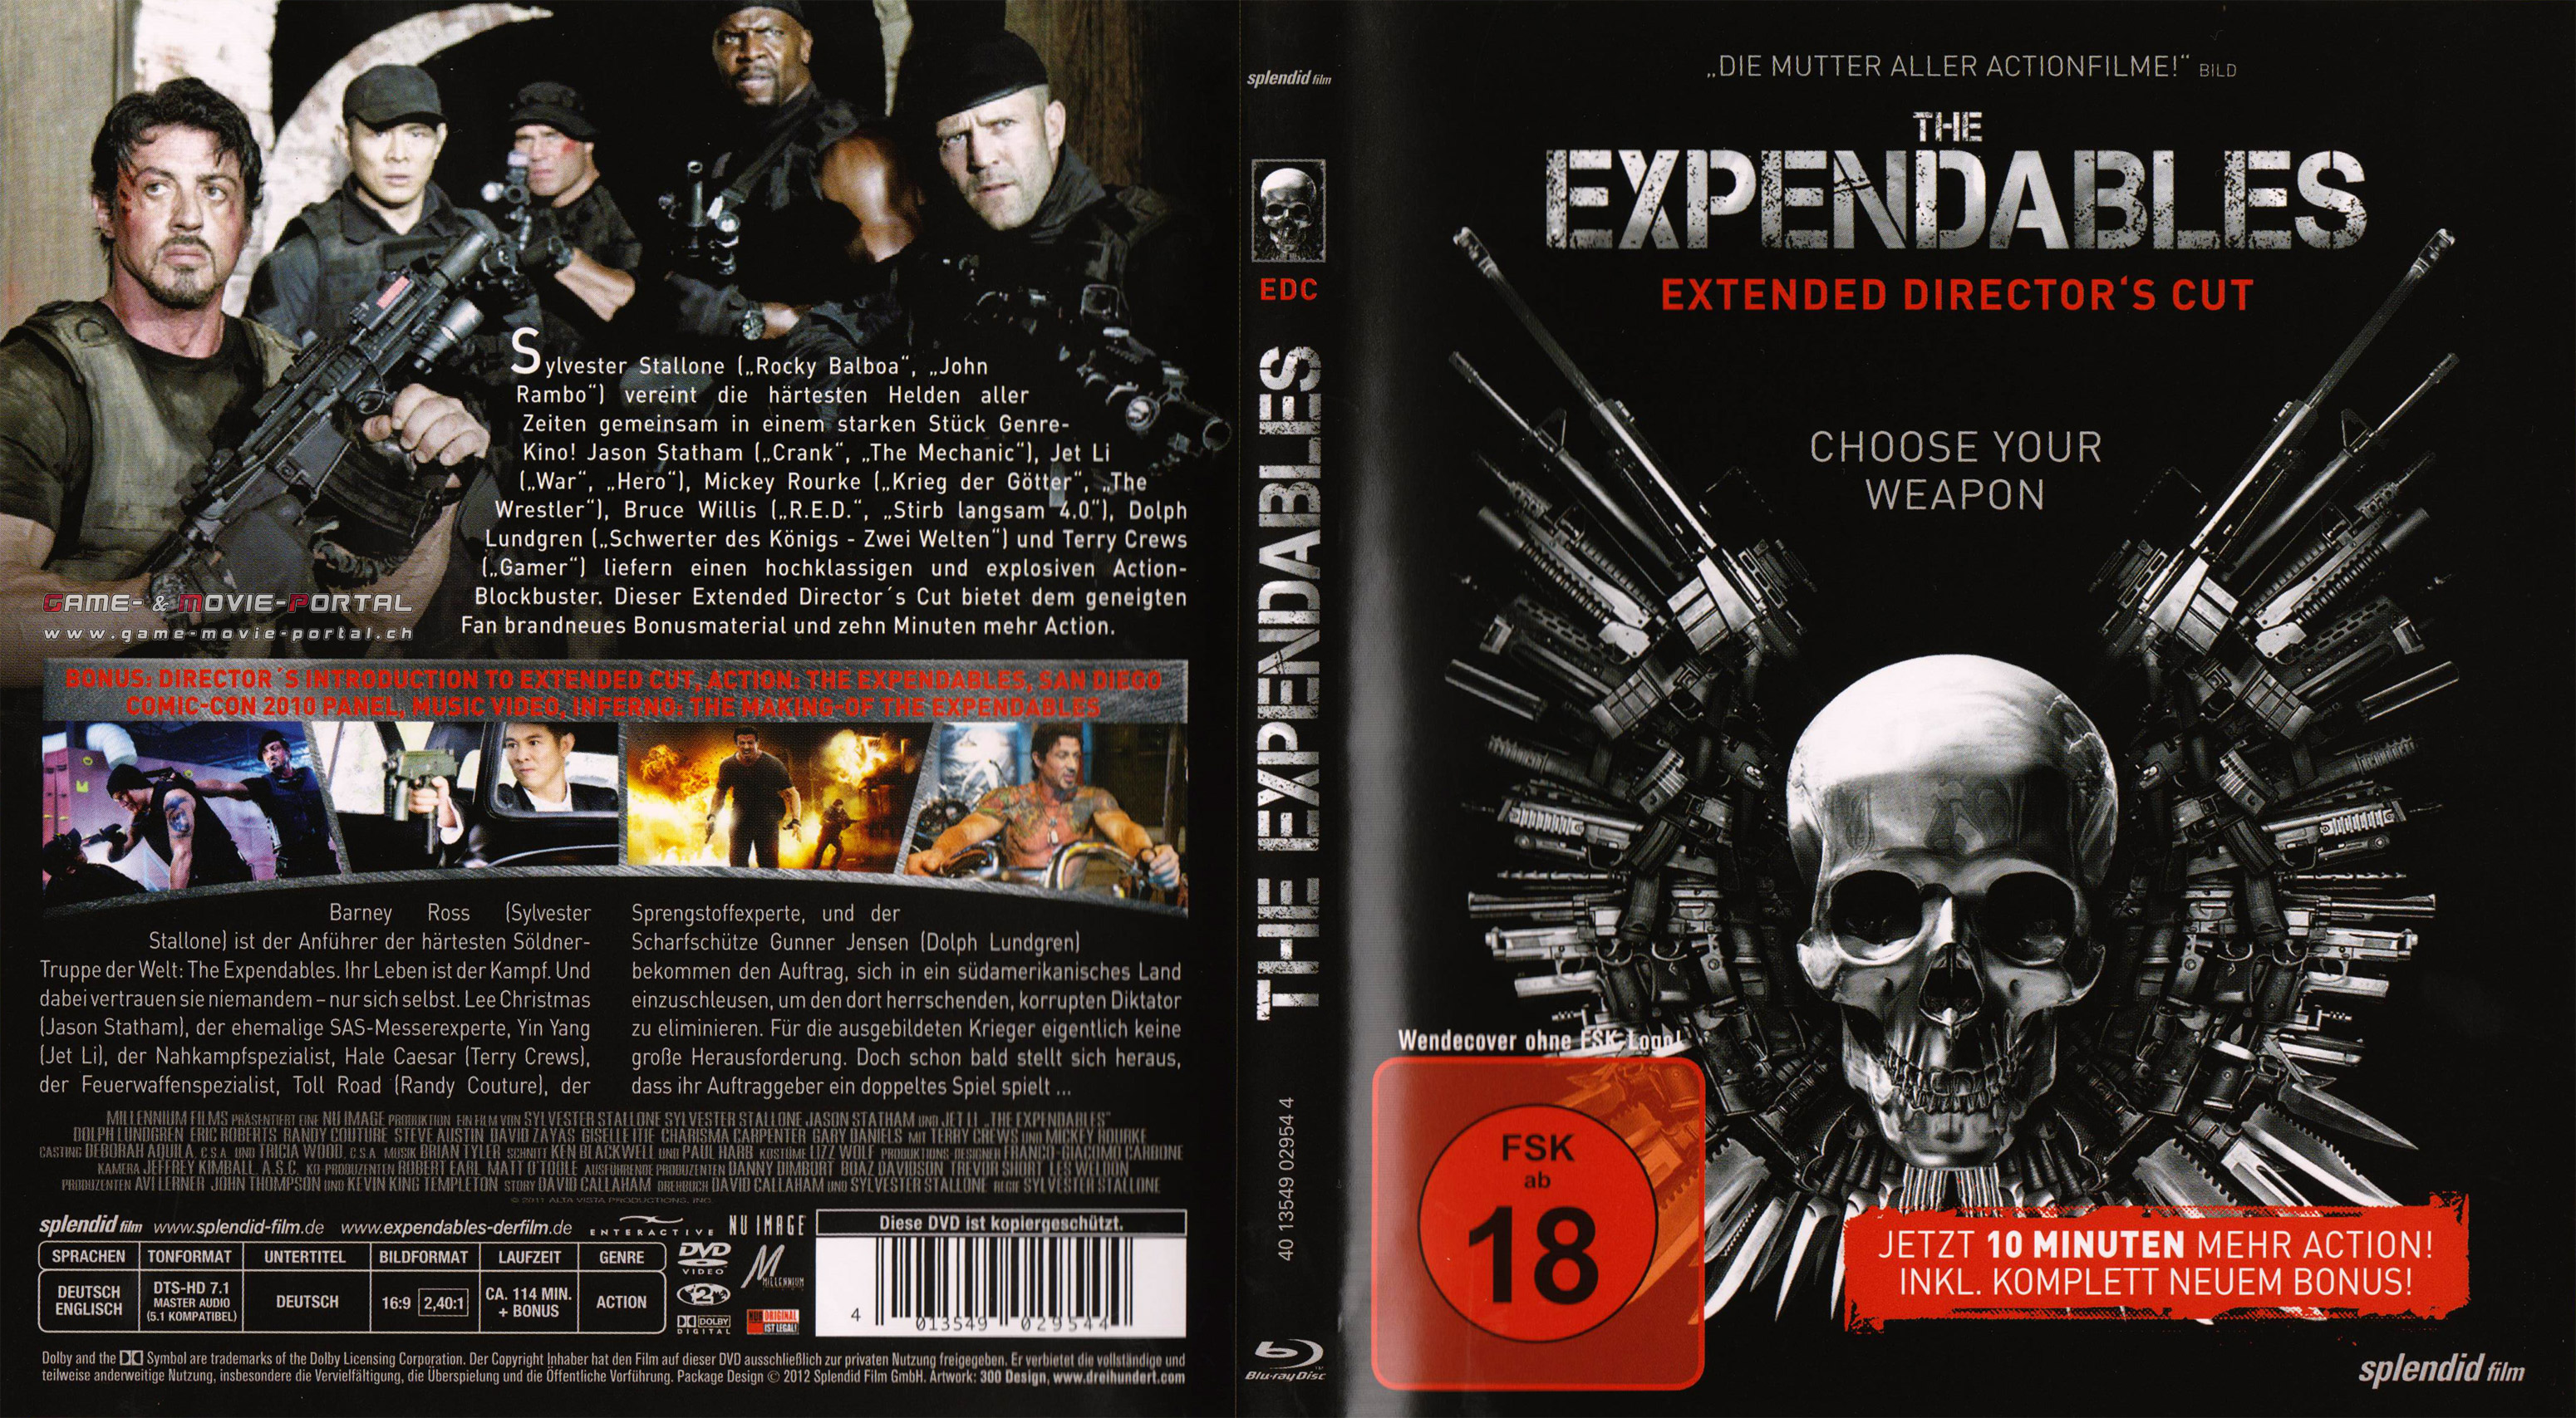 GMP The Expendables Cover Packshot Poster In High Quality